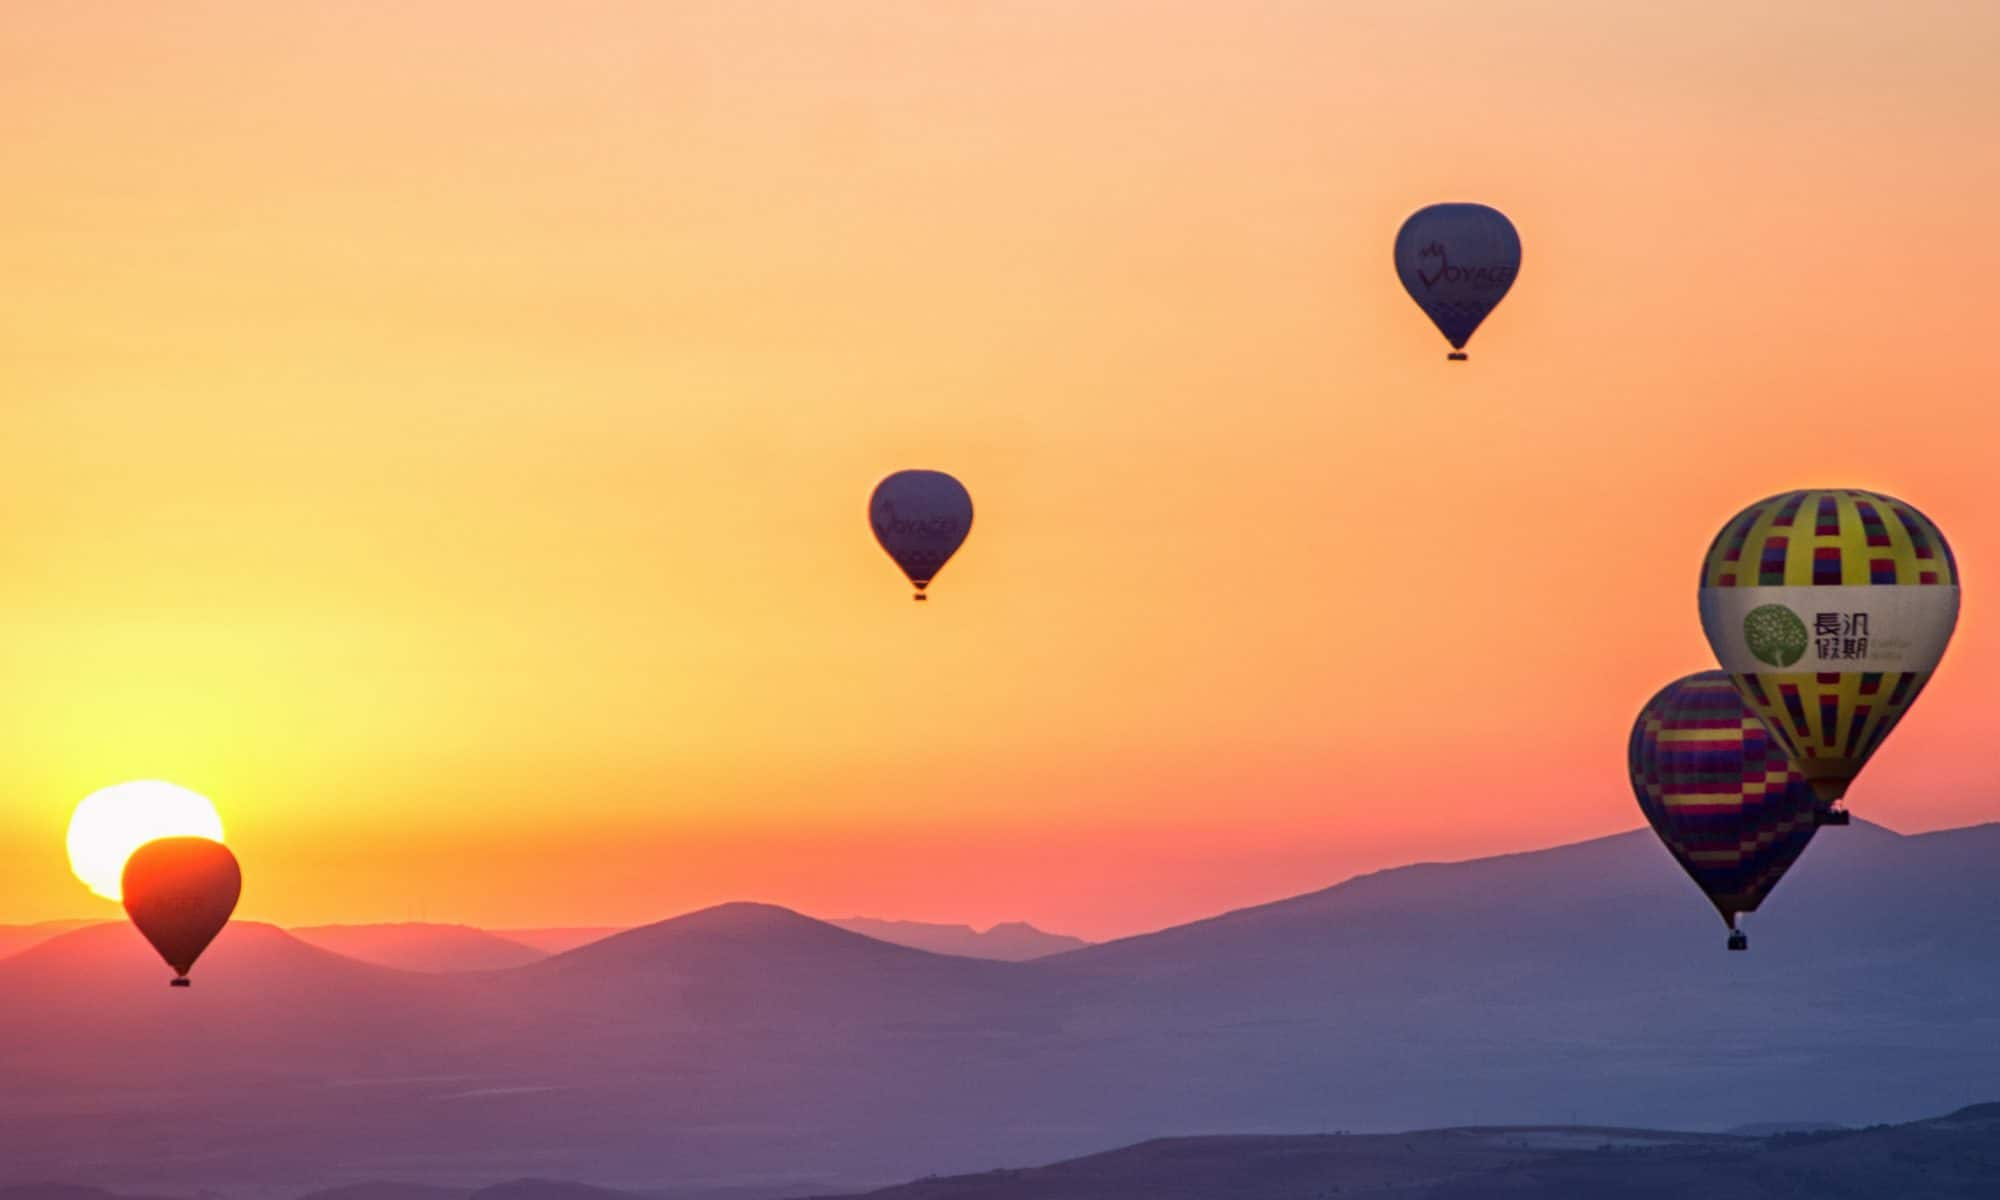 Balloons flying over mountains